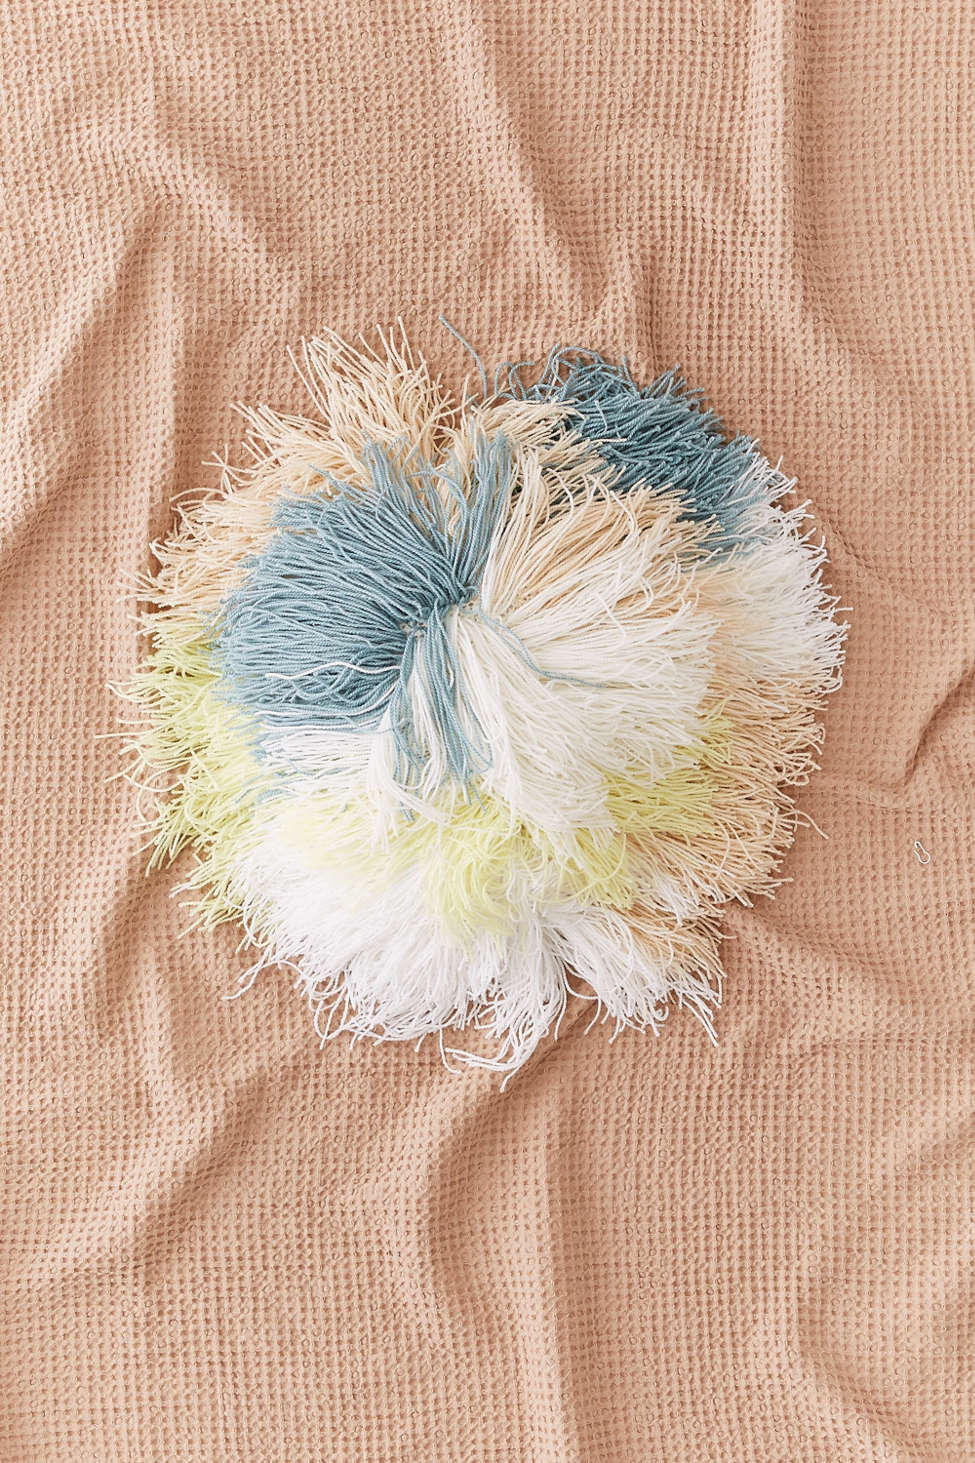 Slide View: 1: Round Shaggy Pastel Pillow